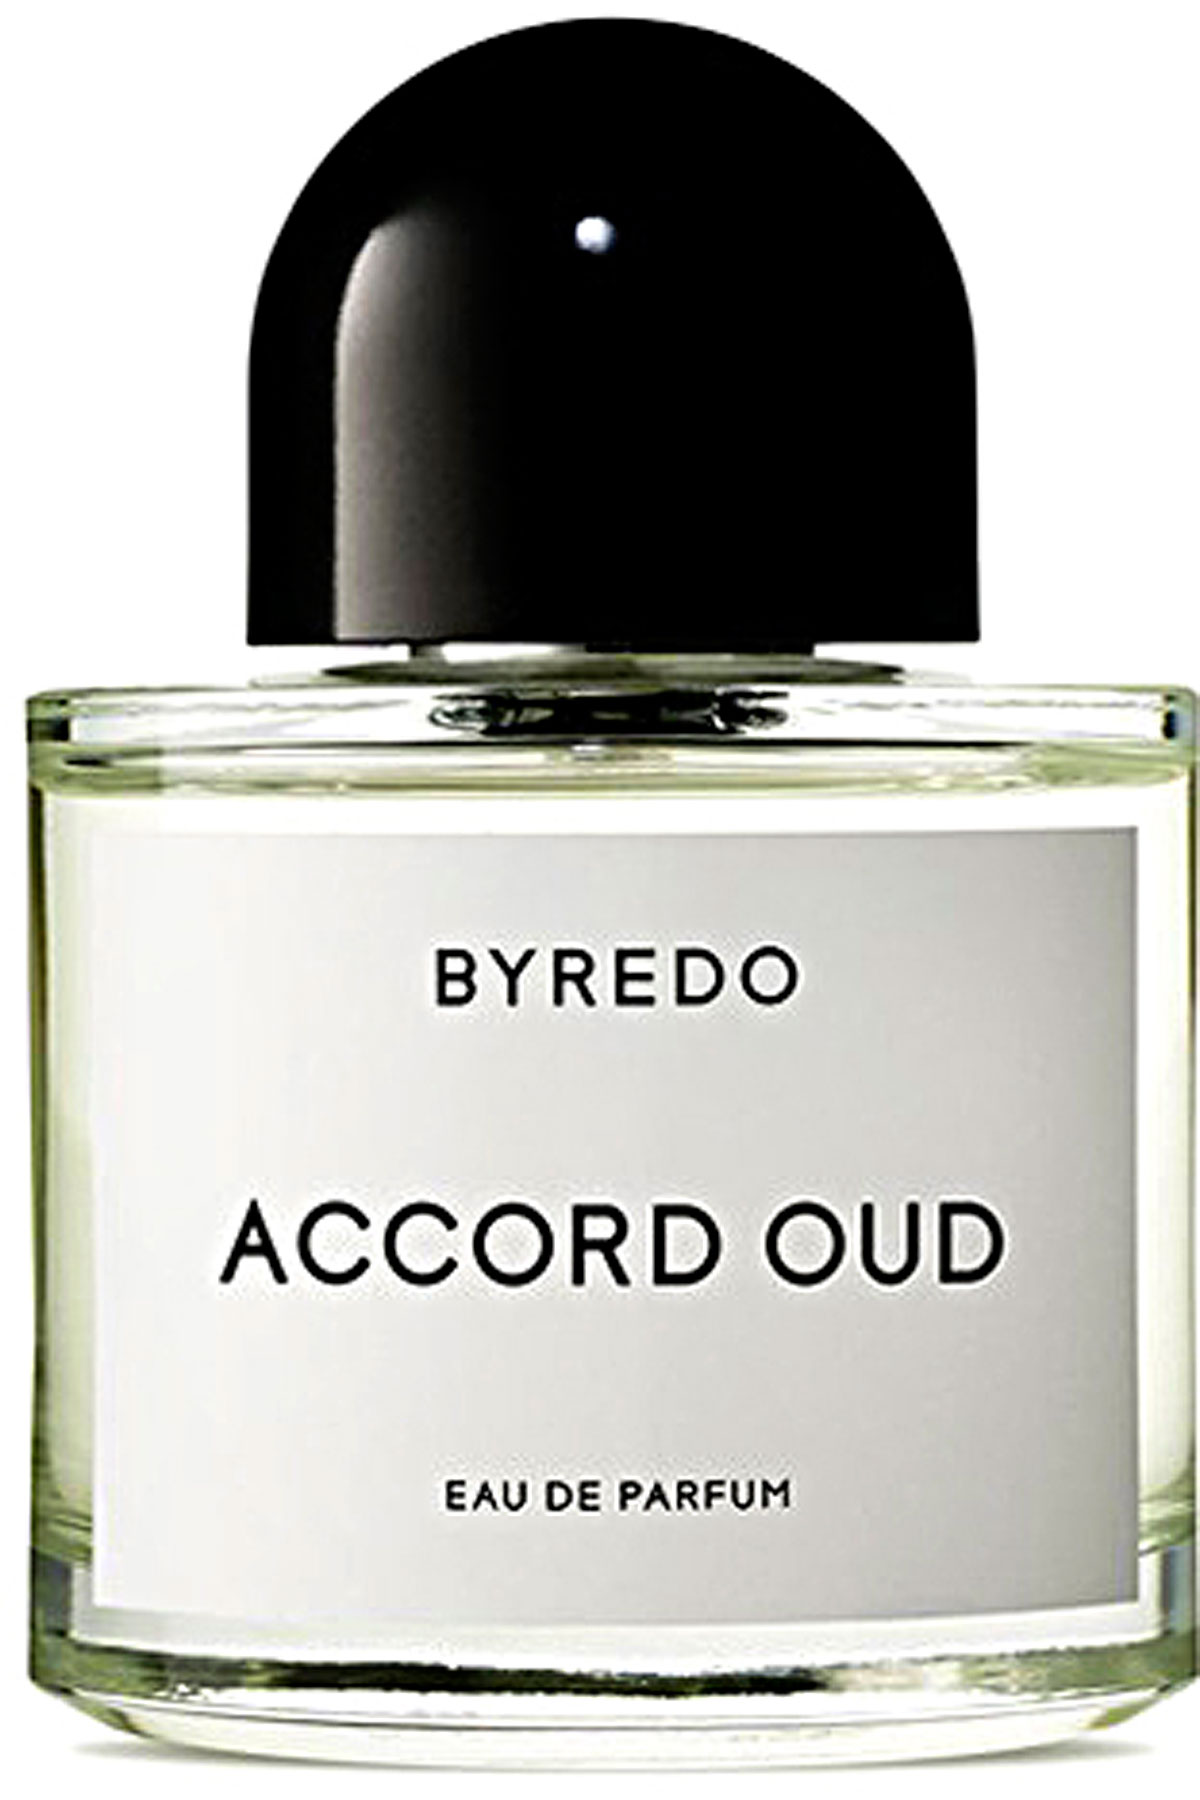 Byredo Fragrances for Women, Accord Oud - Eau De Parfum - 100 Ml, 2019, 100 ml